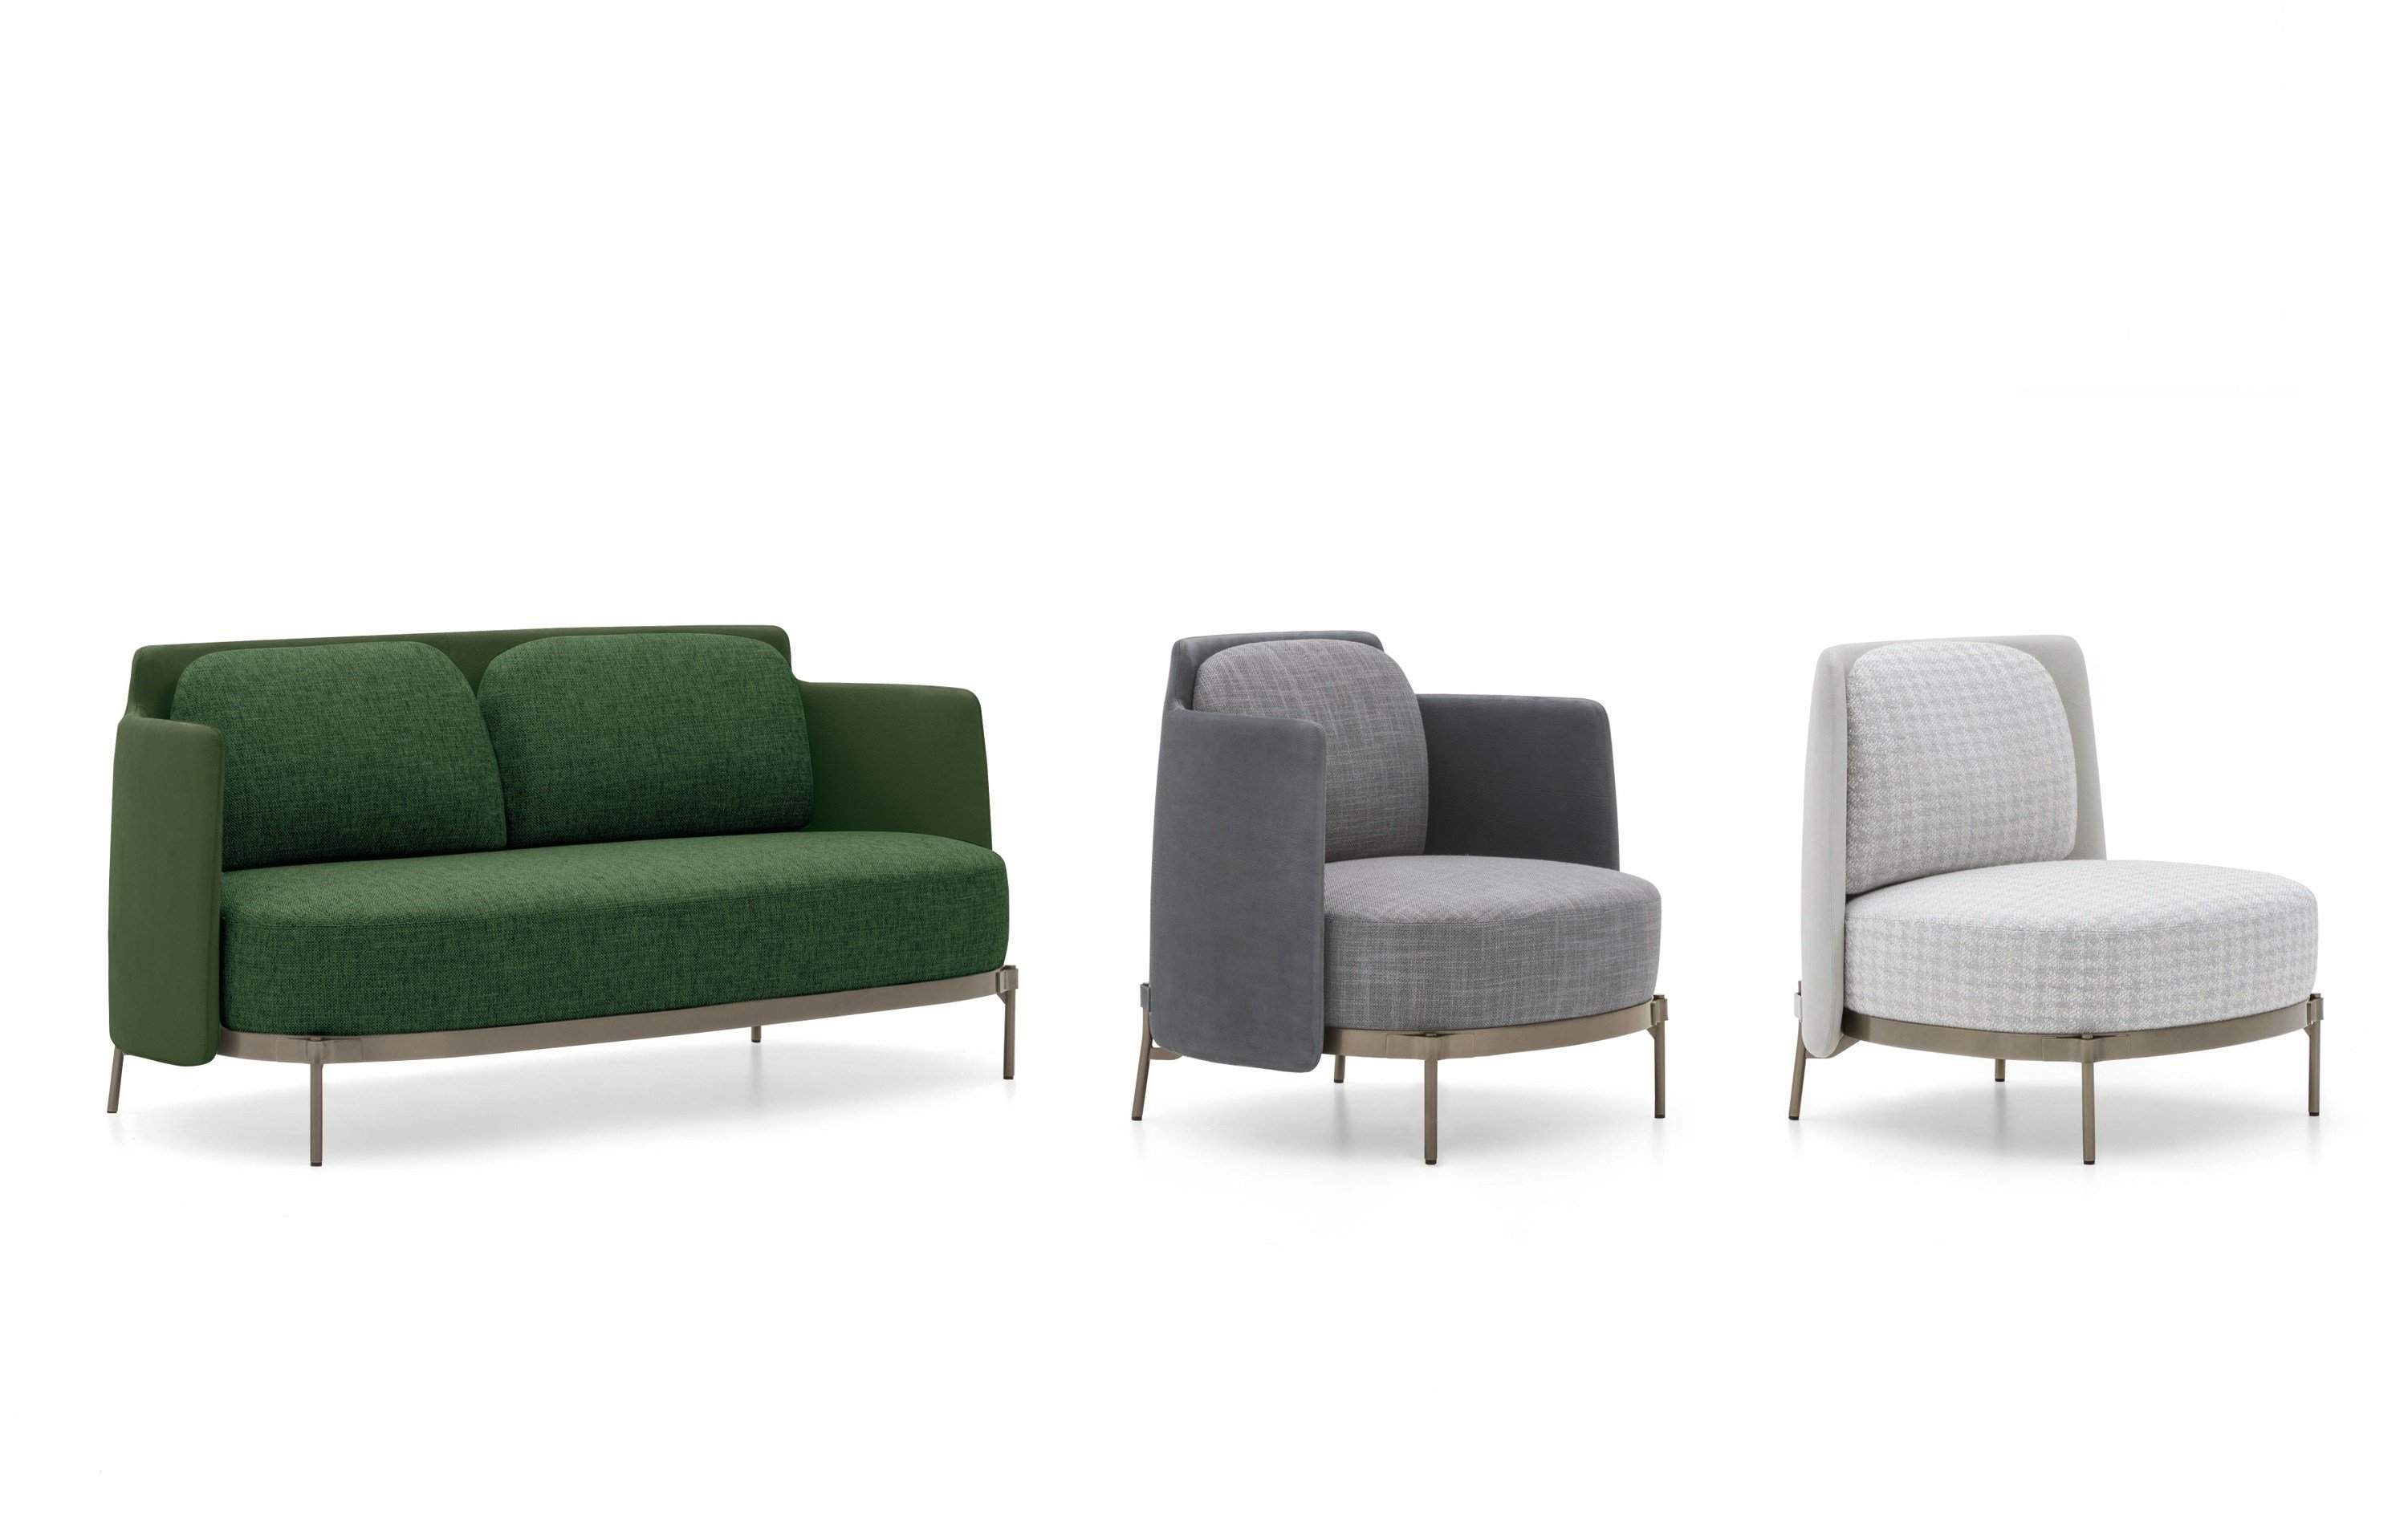 TAPE | Armchair Tape Collection By Minotti design Nendo